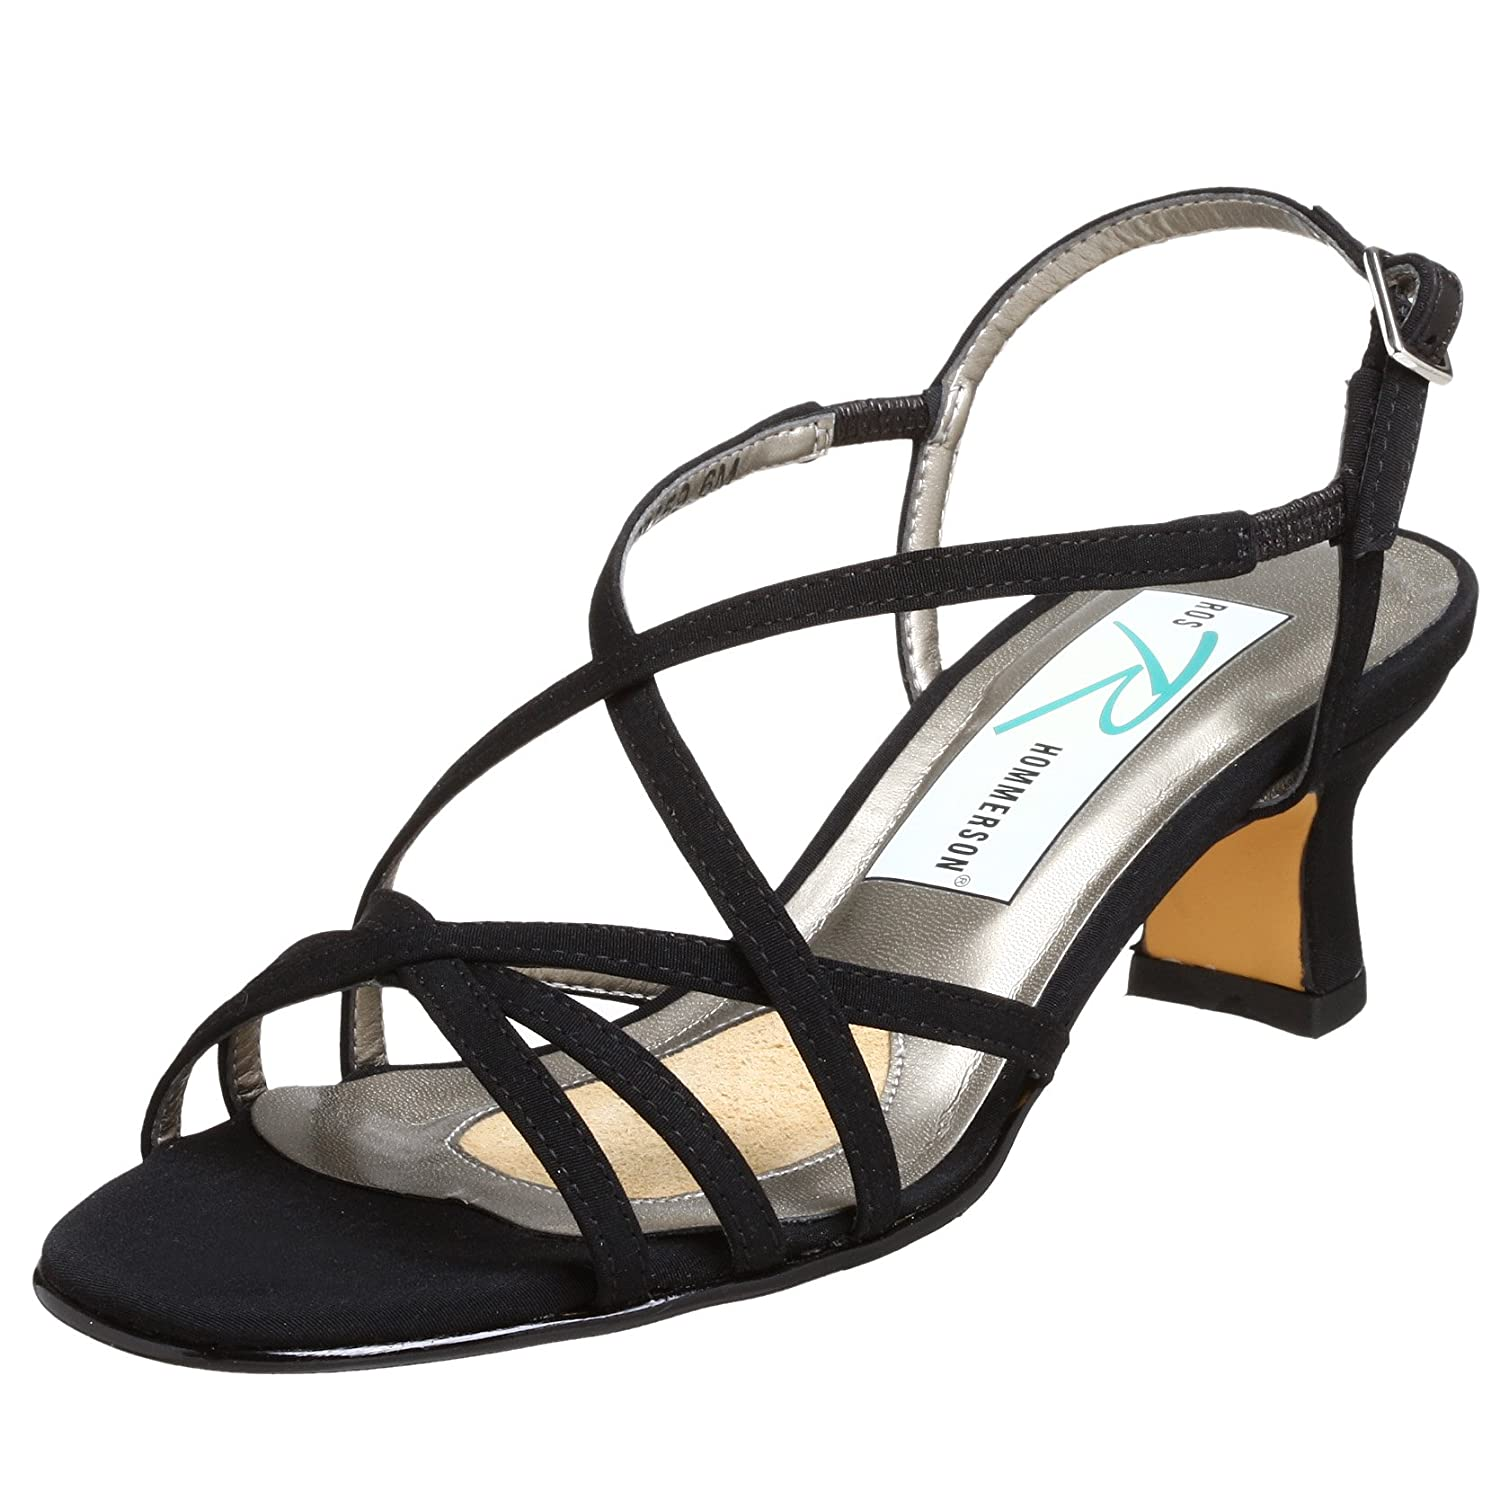 amazoncom ros hommerson womenu0027s lite strappy dress shoe fabric heeled sandals